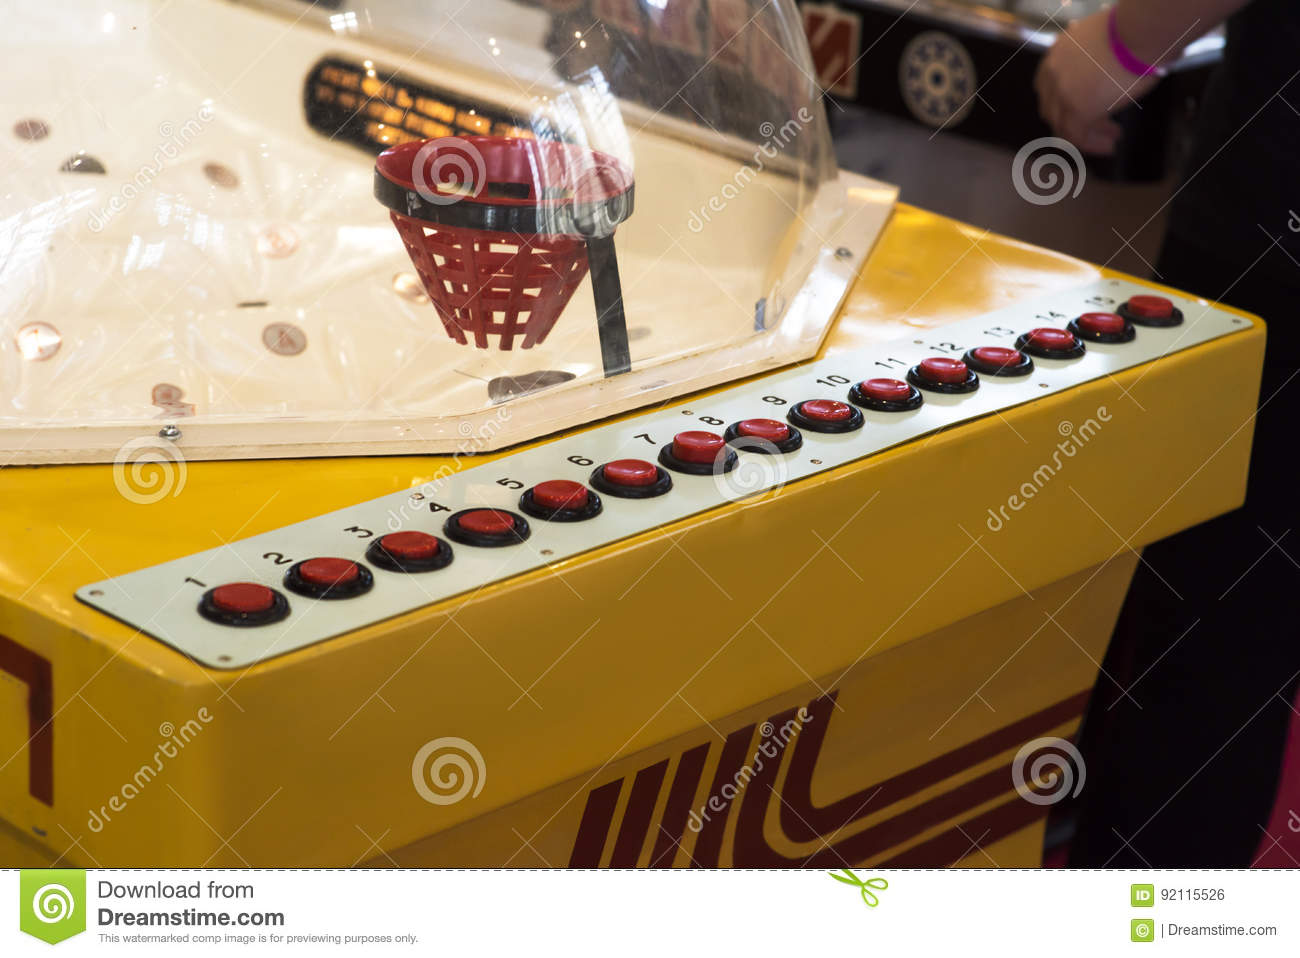 Vintage table hockey - Attack Ice Vintage Hockey Table Game Old Stock Photo